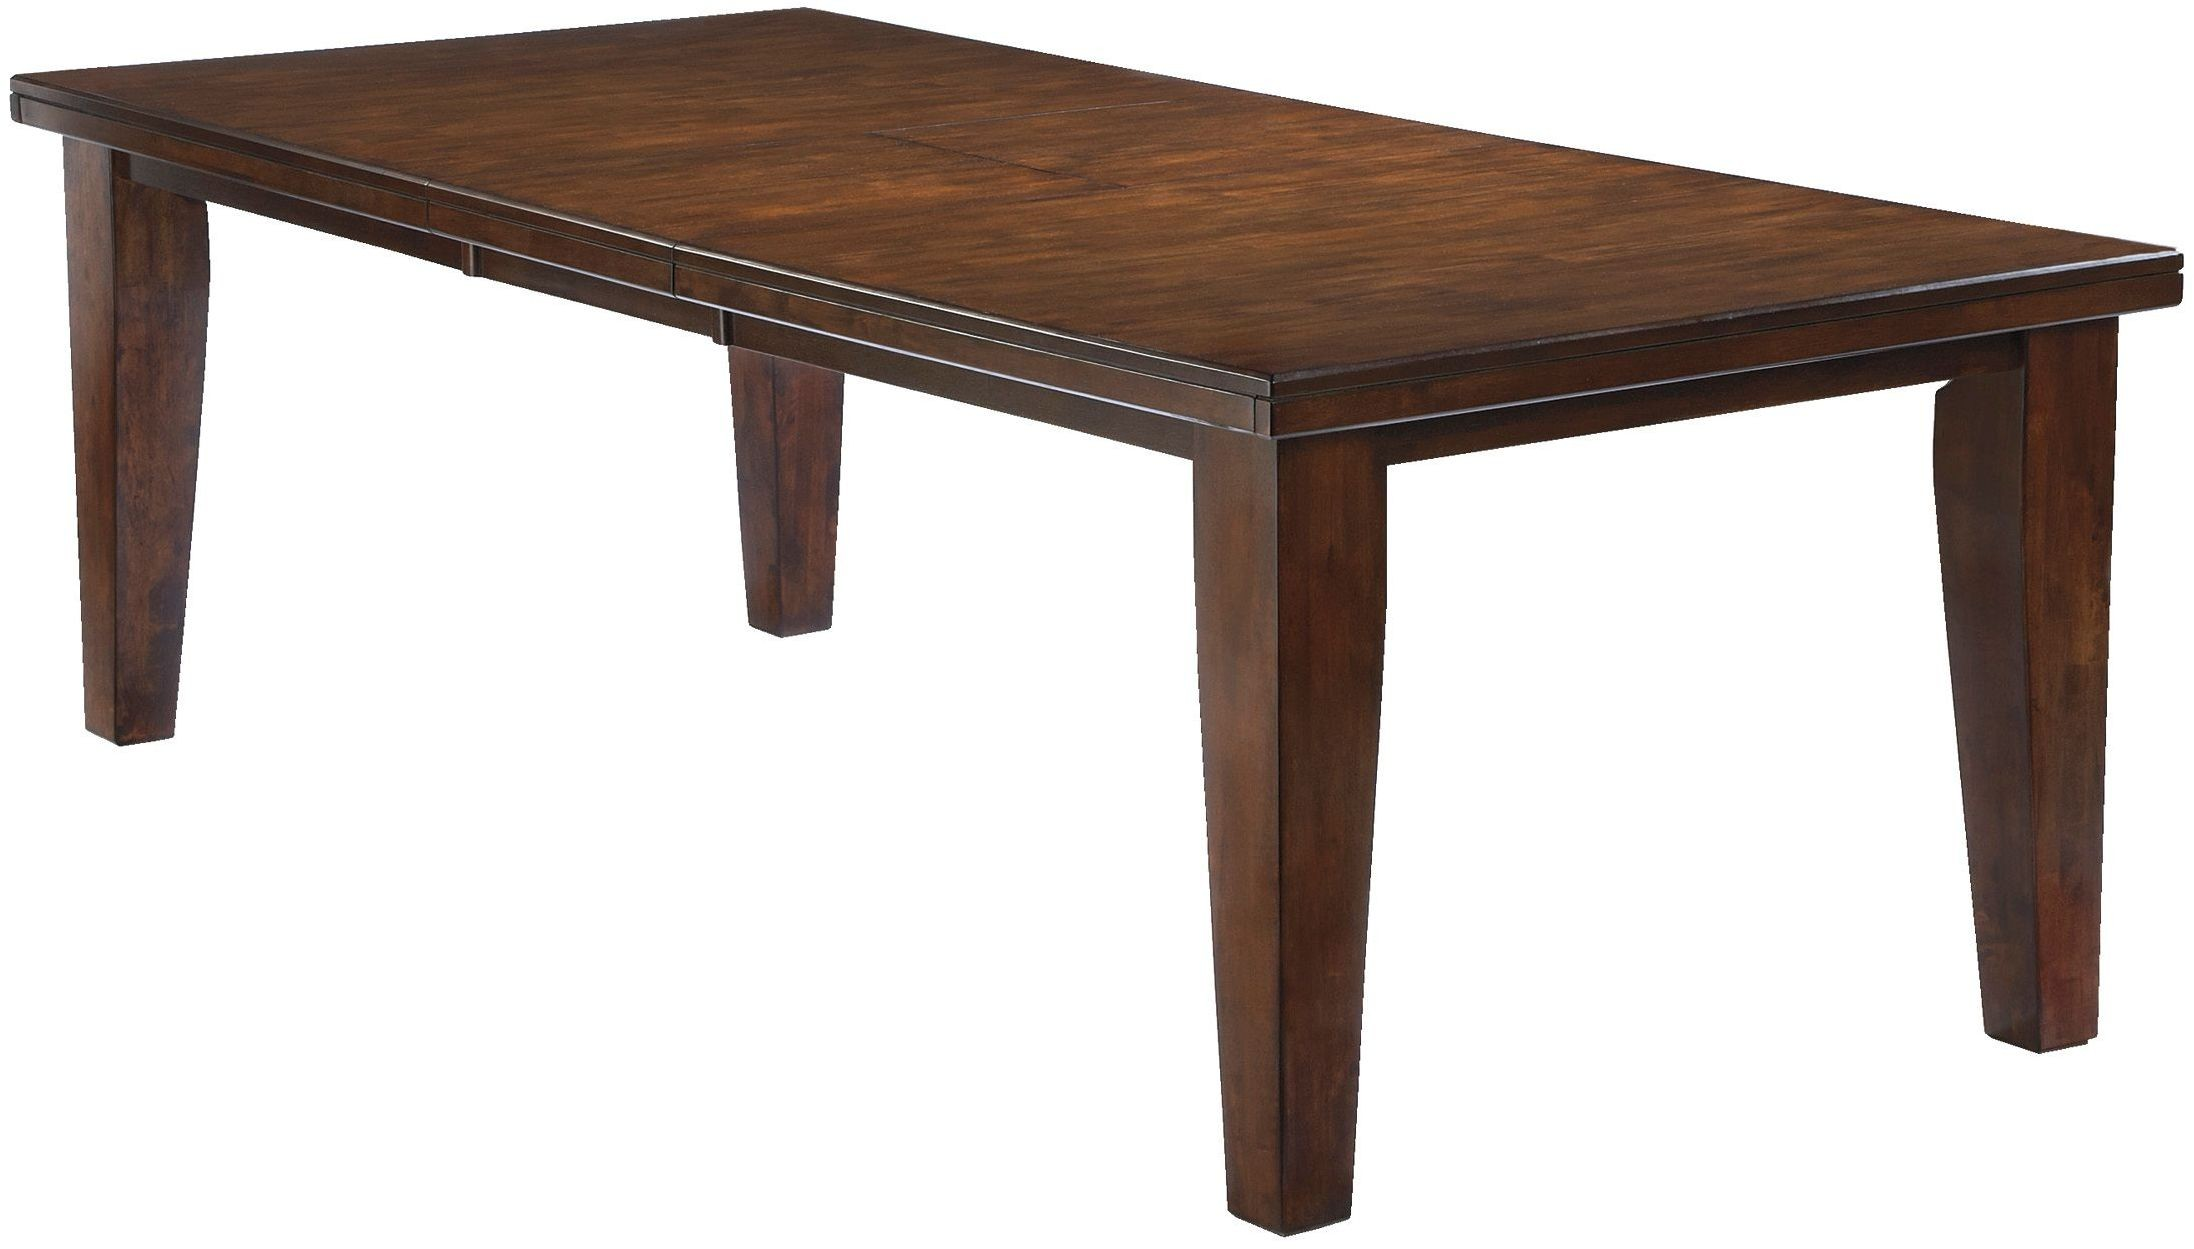 Larchmont Extendable Dining Table From Ashley D442 45